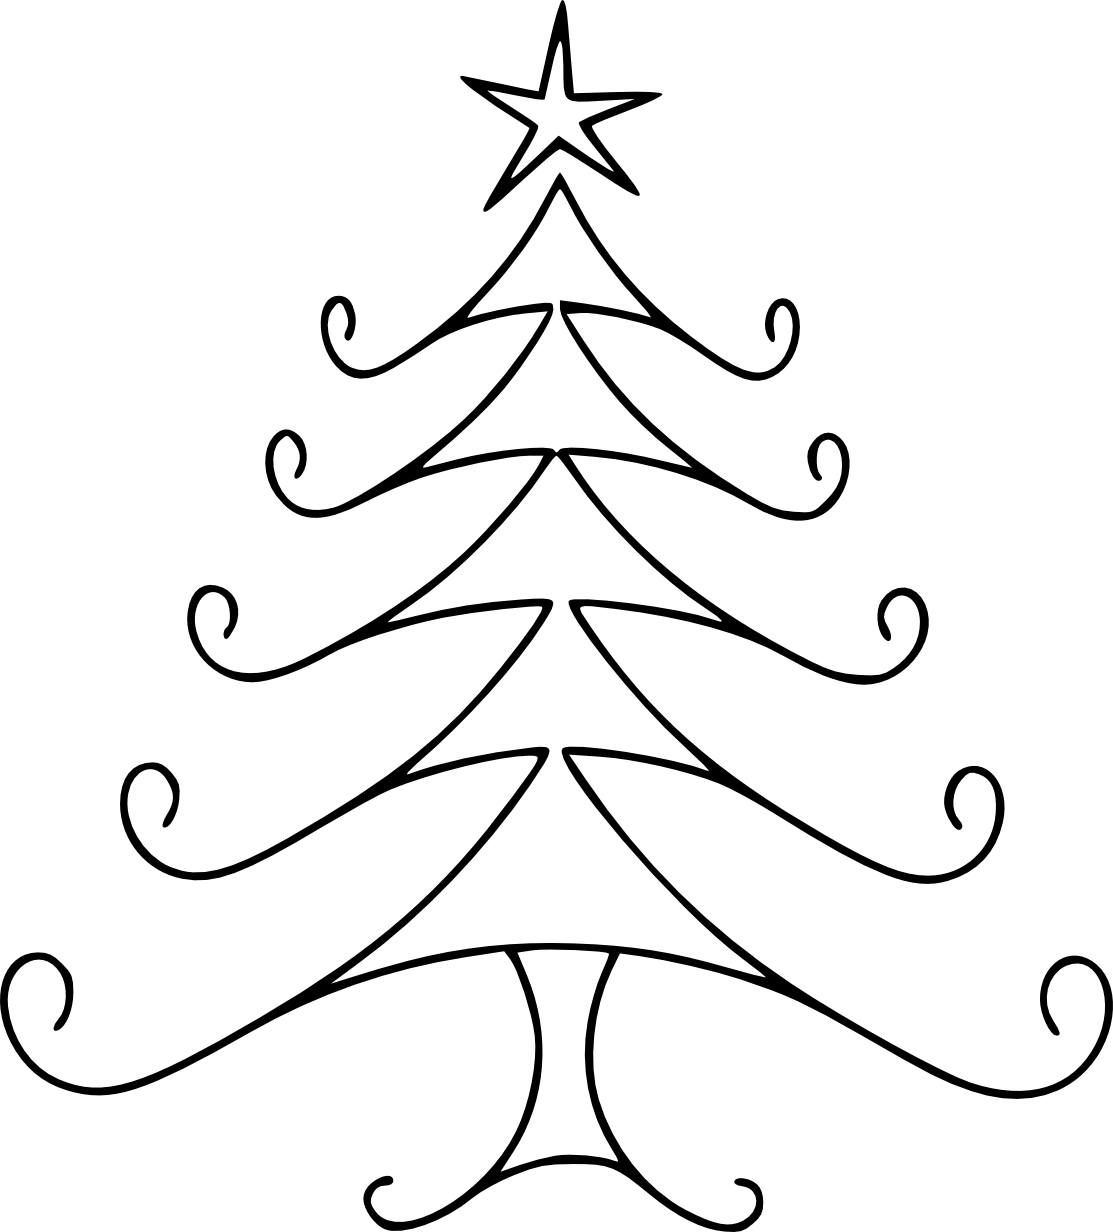 Simple Line Drawing Clip Art : Christmas tree line drawing cliparts